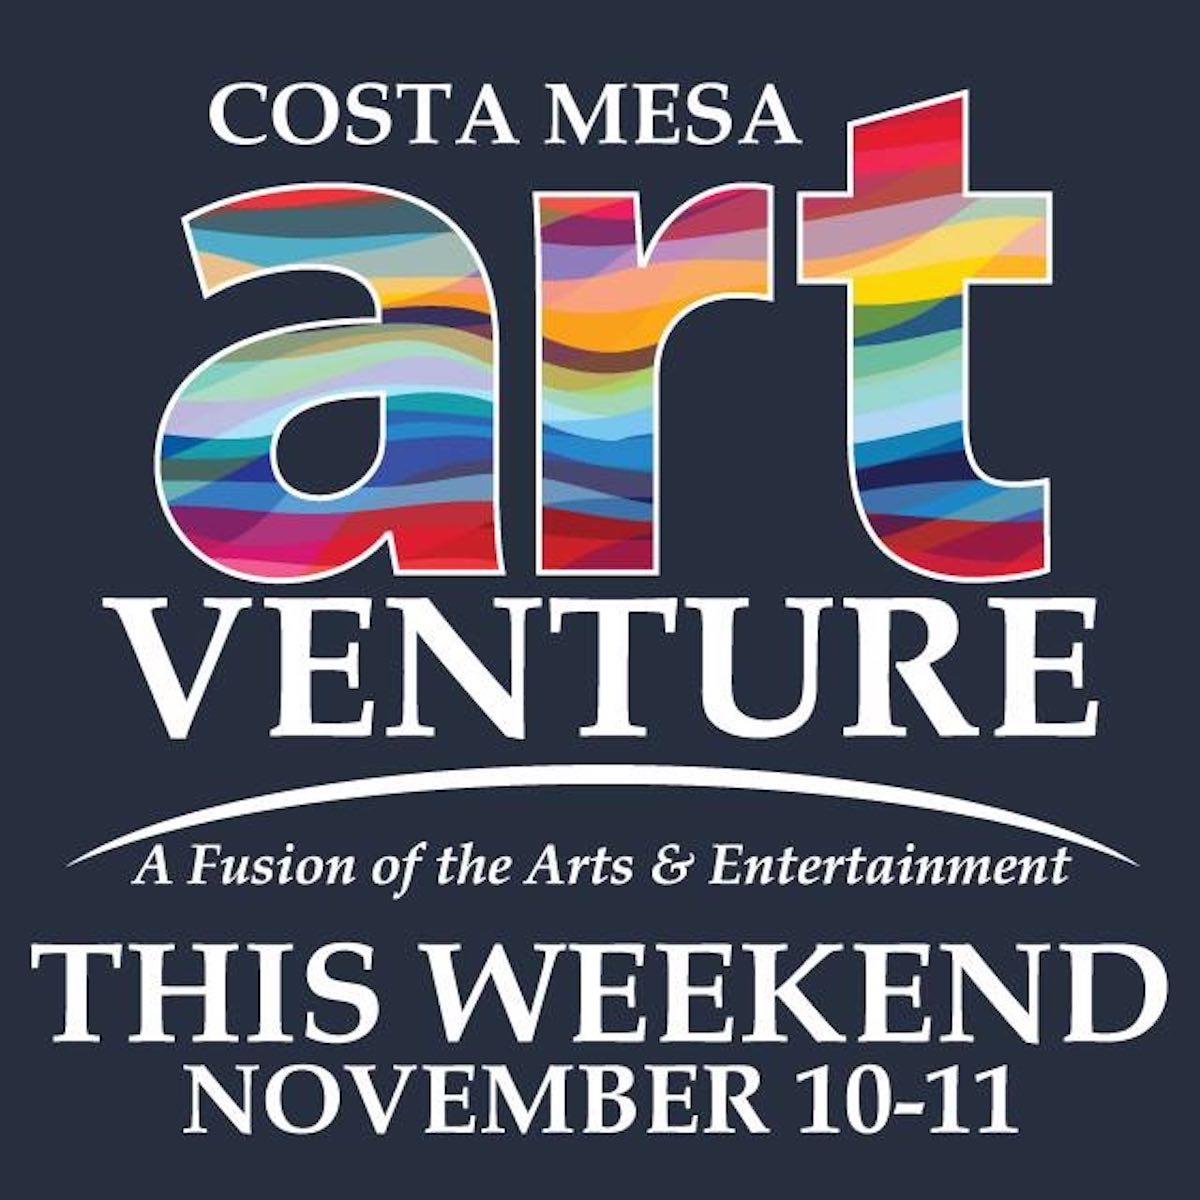 ARTventure at SOCO and The OC Mix, hosted by the Costa Mesa Cultural Arts Committee in Costa Mesa, California